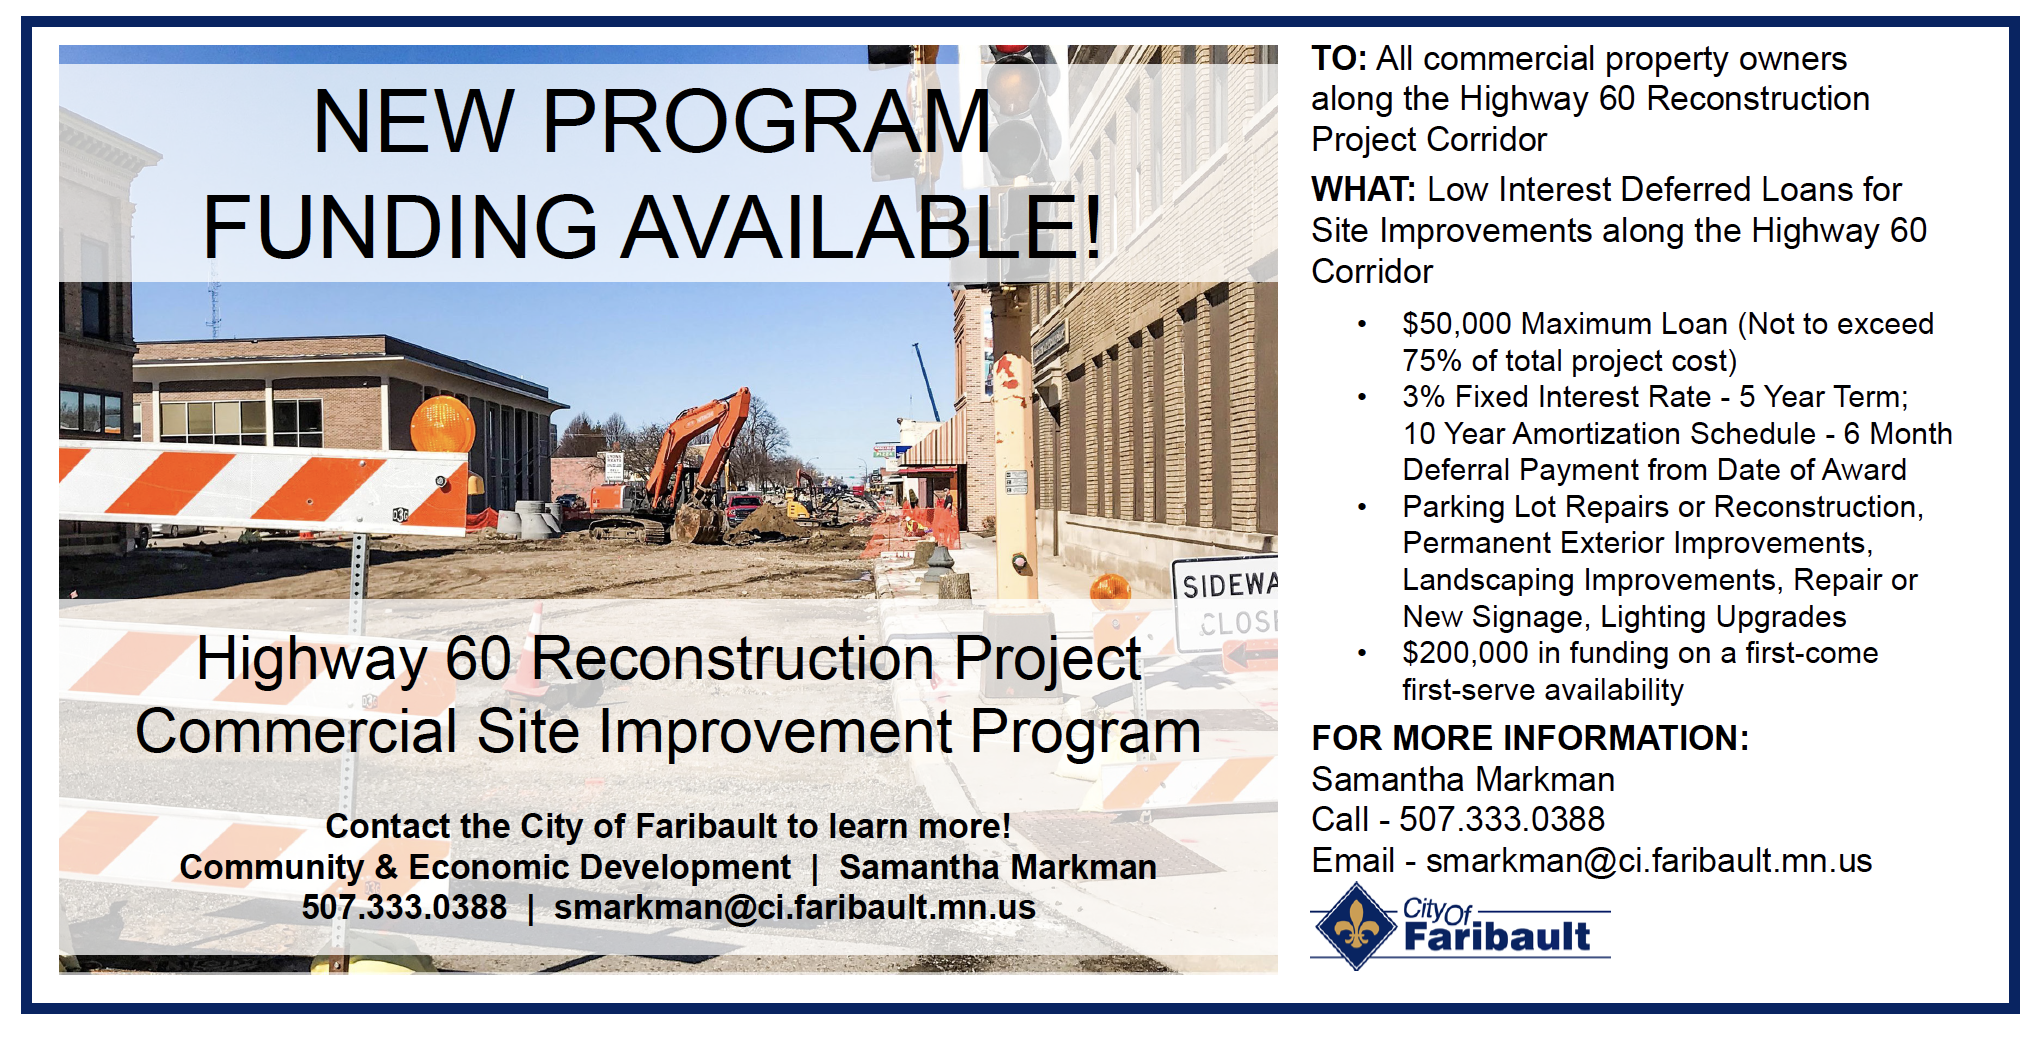 Highway 60 Reconstruction Project Commercial Site Improvement Program